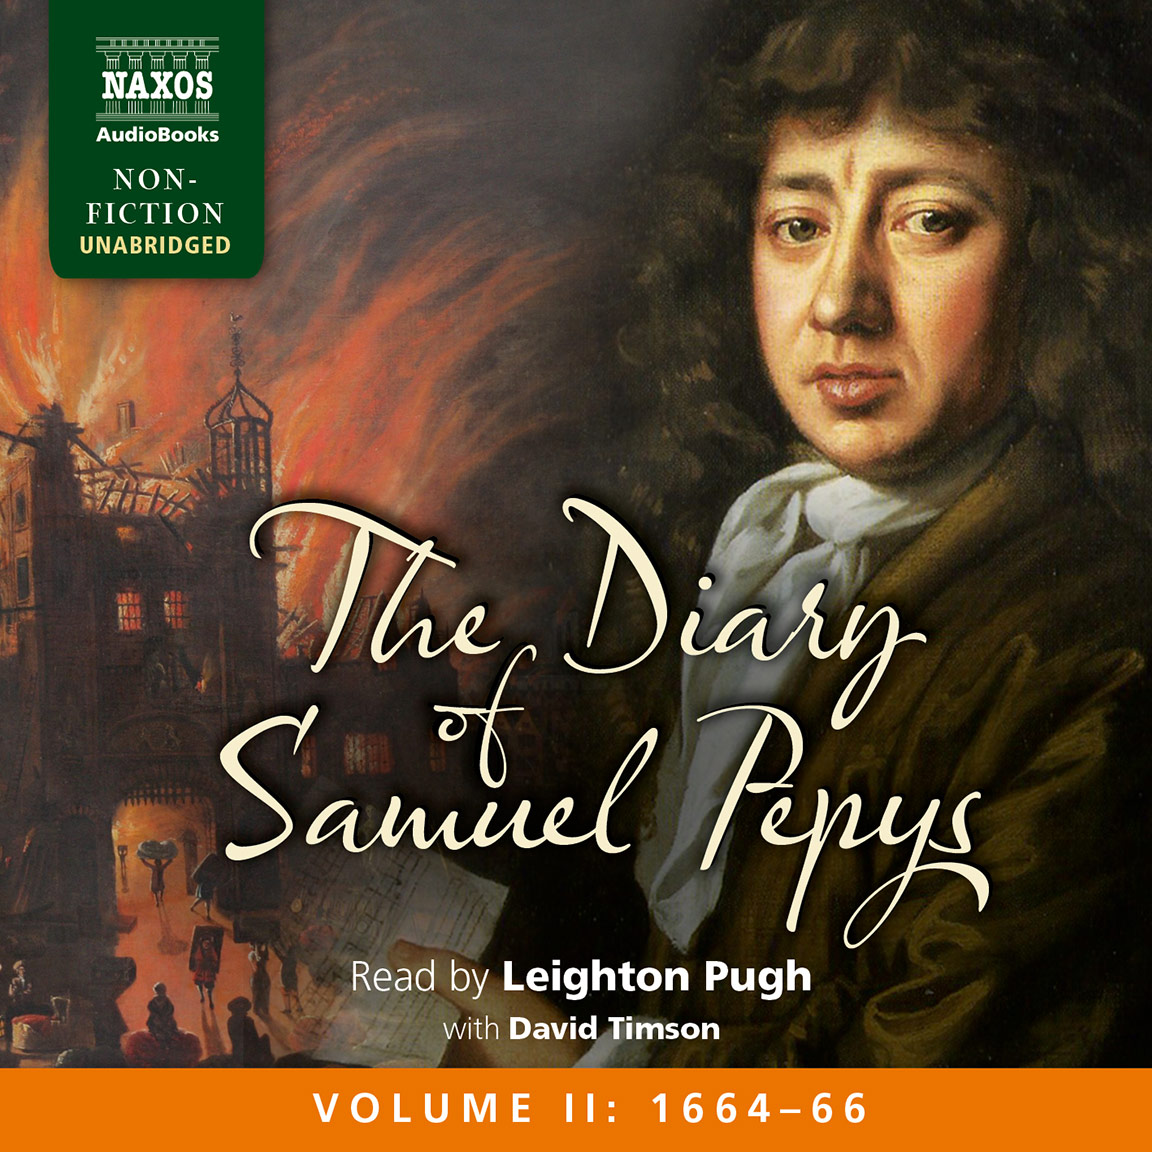 Diary of Samuel Pepys, Volume I: 1660-1663, The (unabridged ...